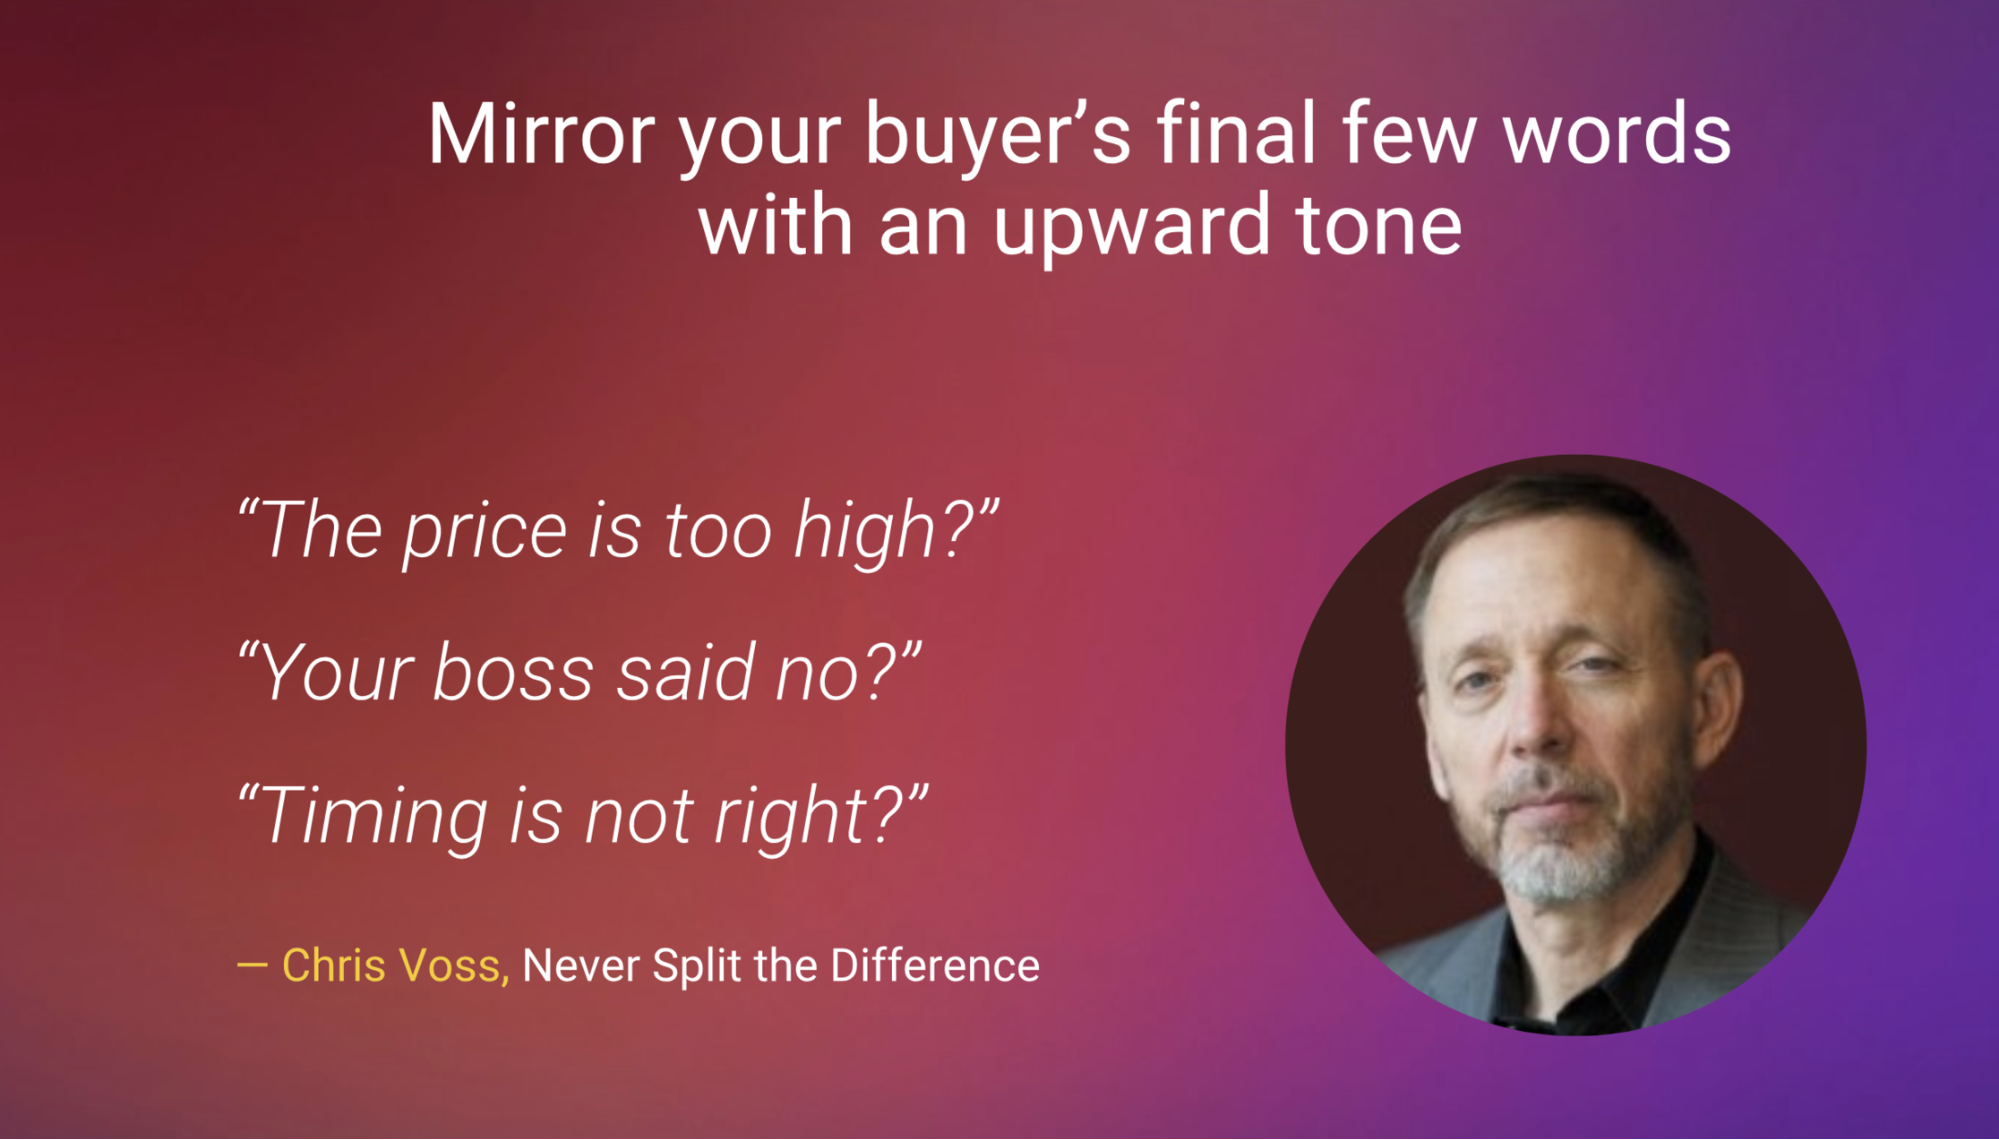 Mirroring sales technique